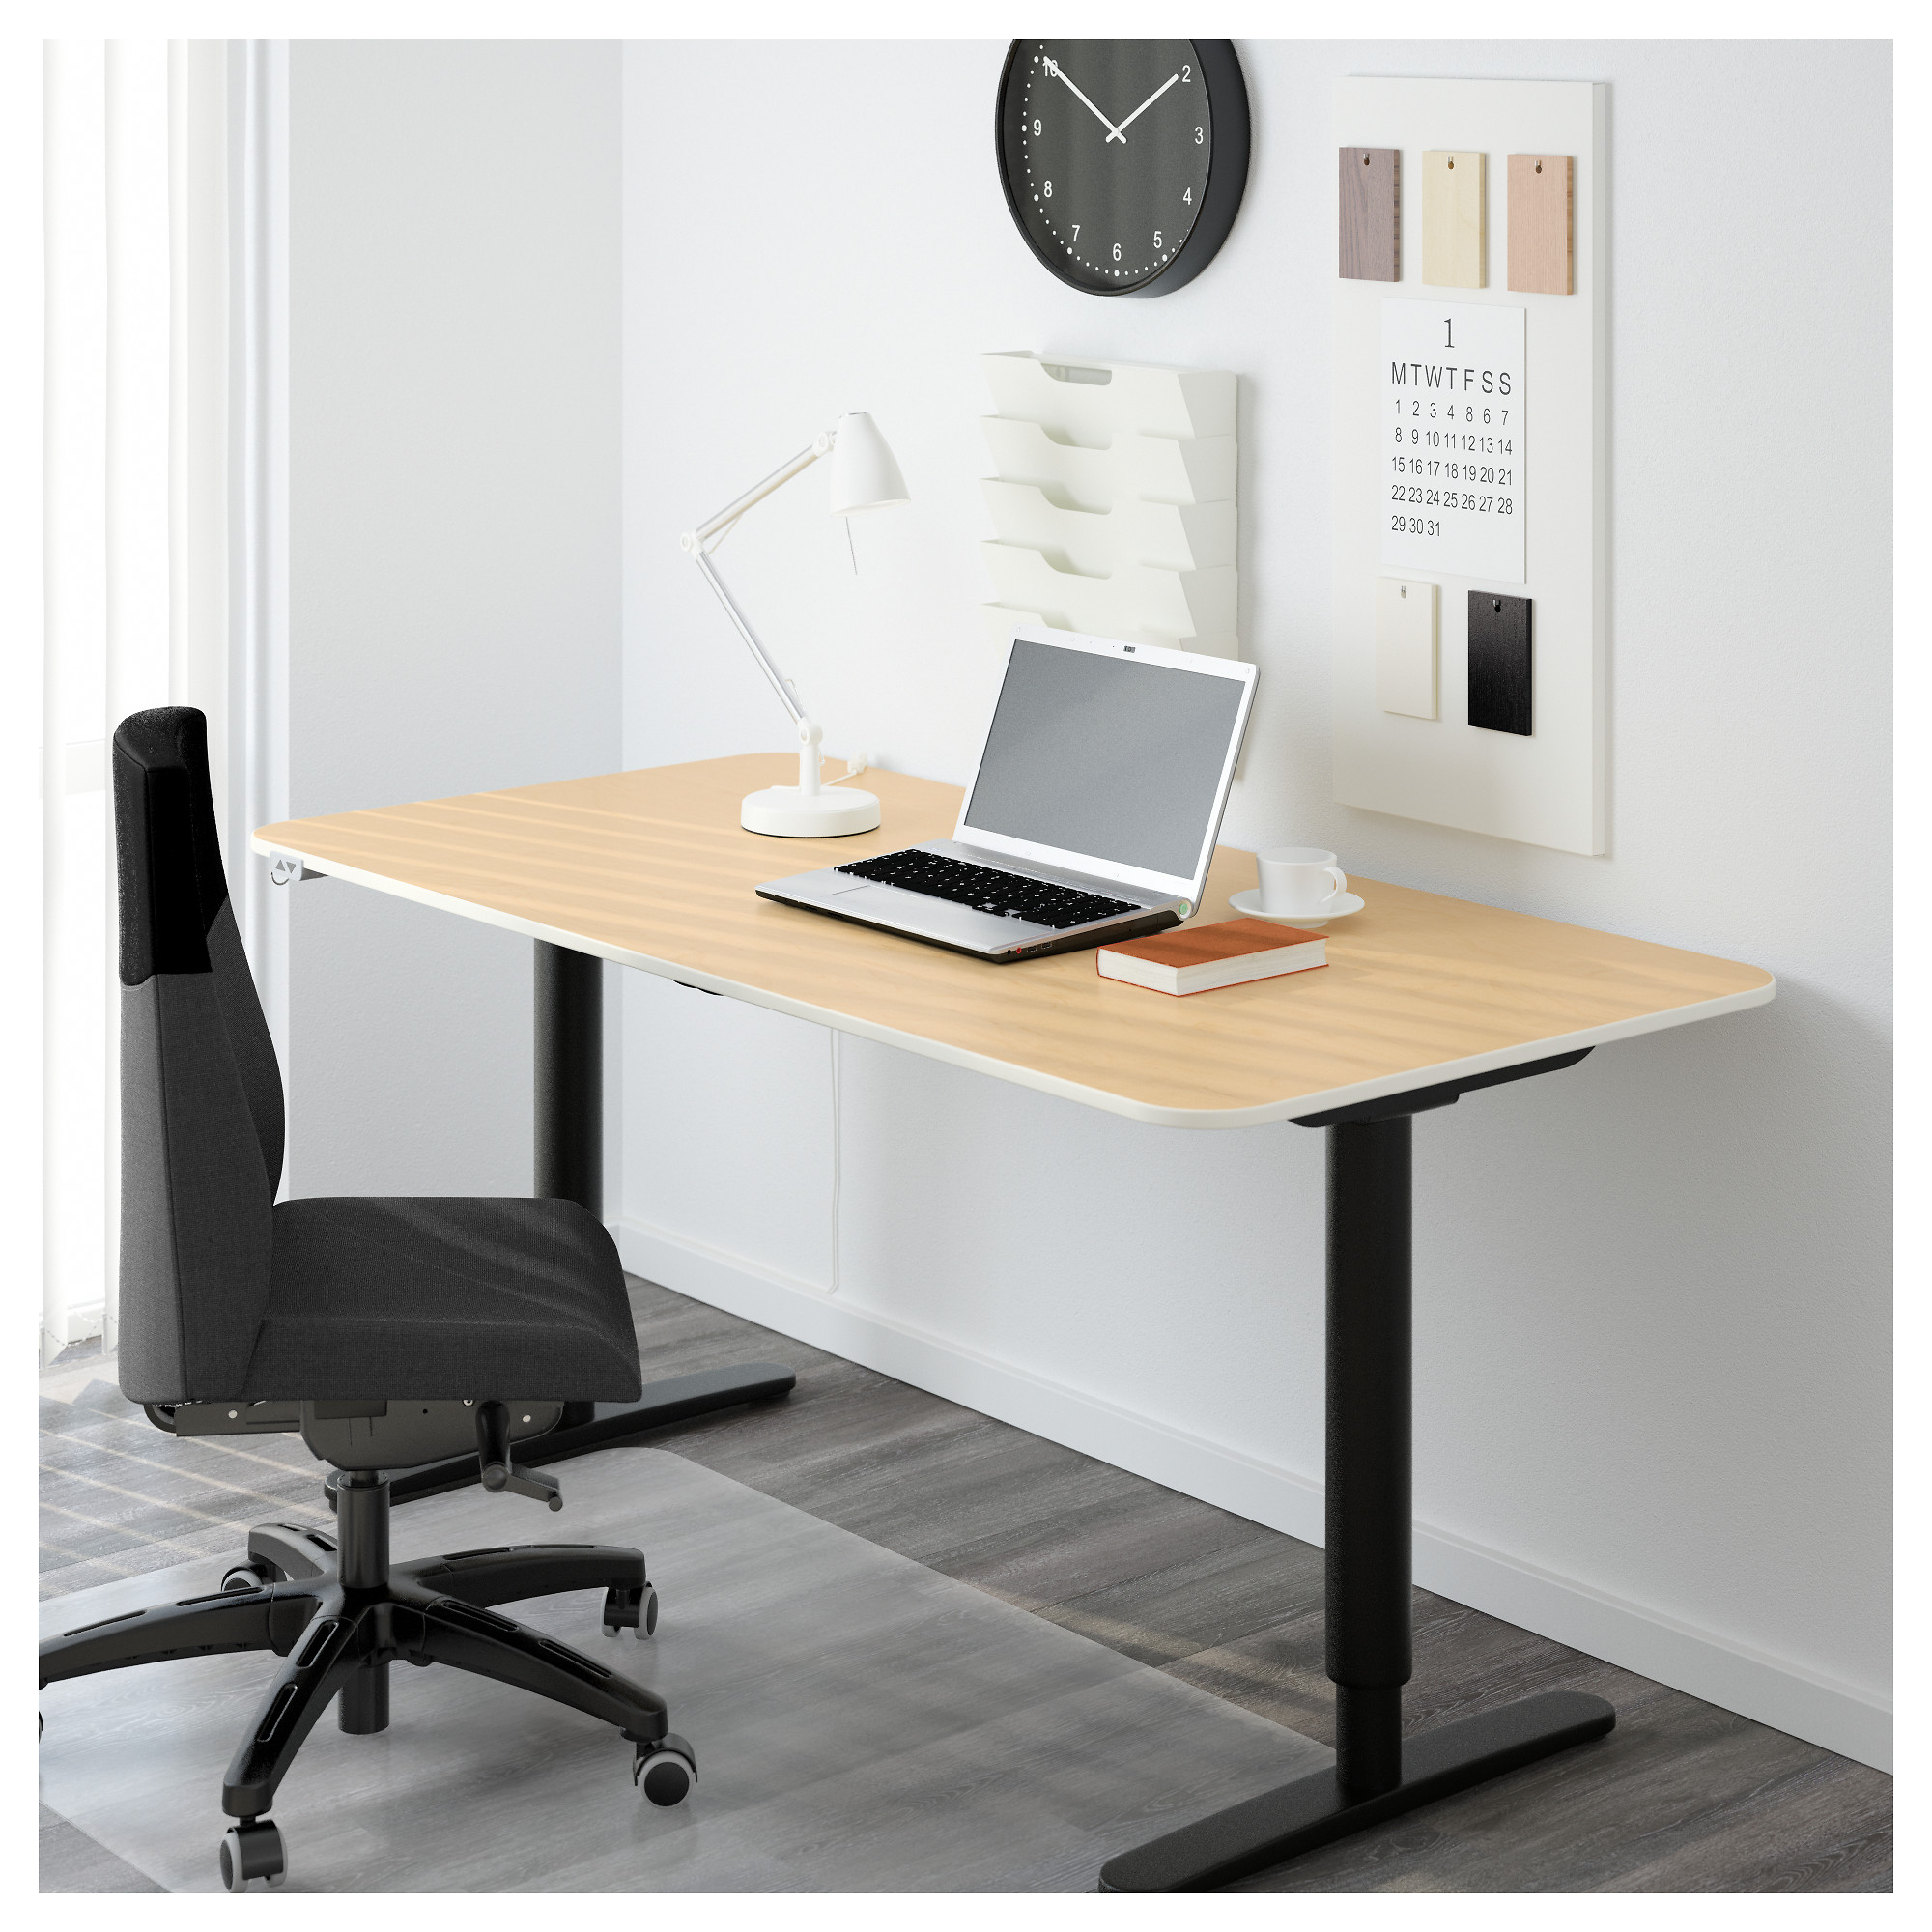 photo new desk ikea things tutorial interiors aw all tops